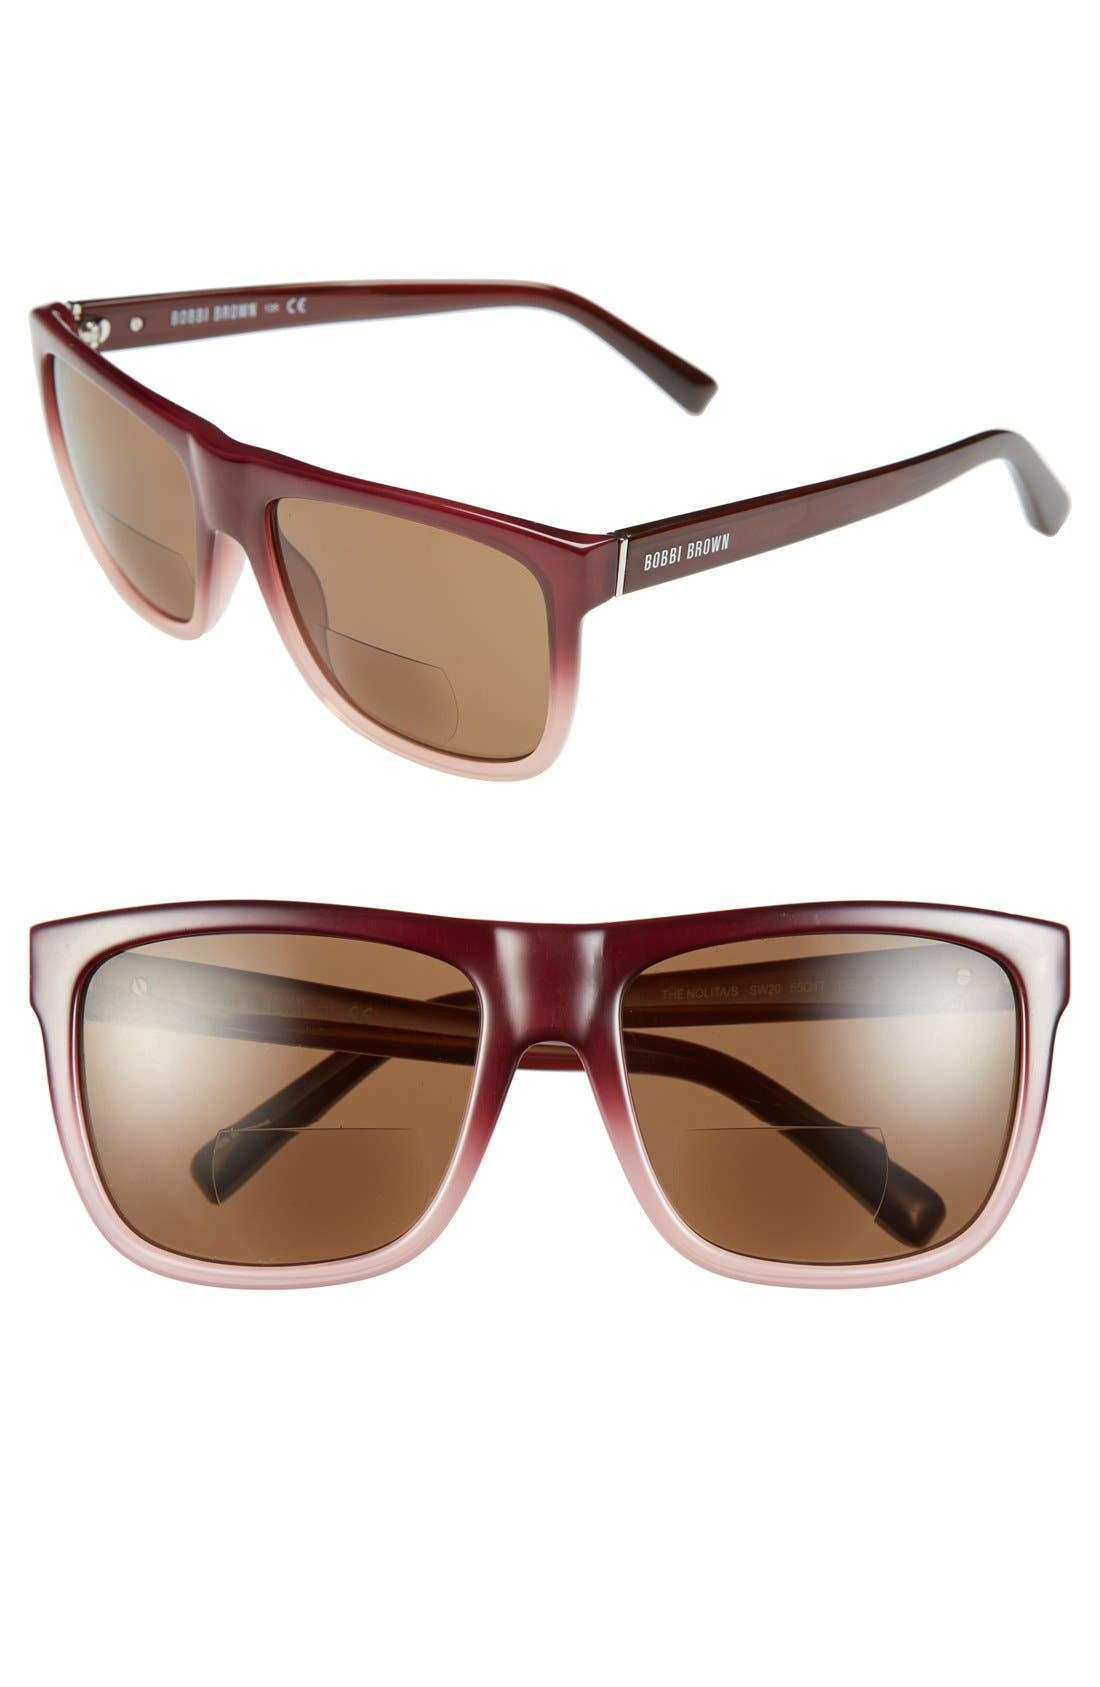 Alternate Image 1 Selected - Bobbi Brown 'The Nolita' 55mm Reading Sunglasses (2 for $88)